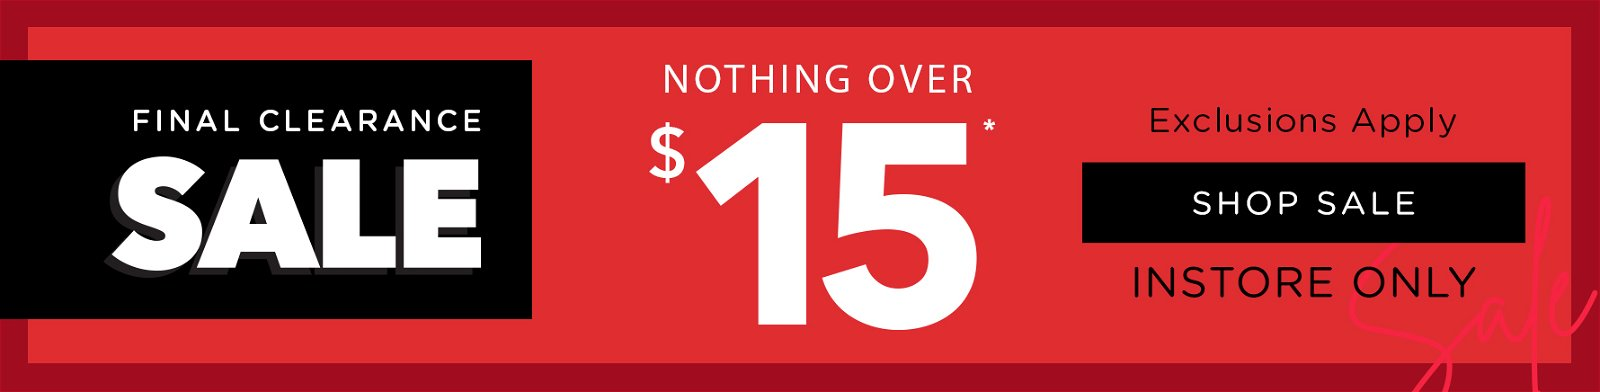 Sale Nothing Over $15 | Instore Only